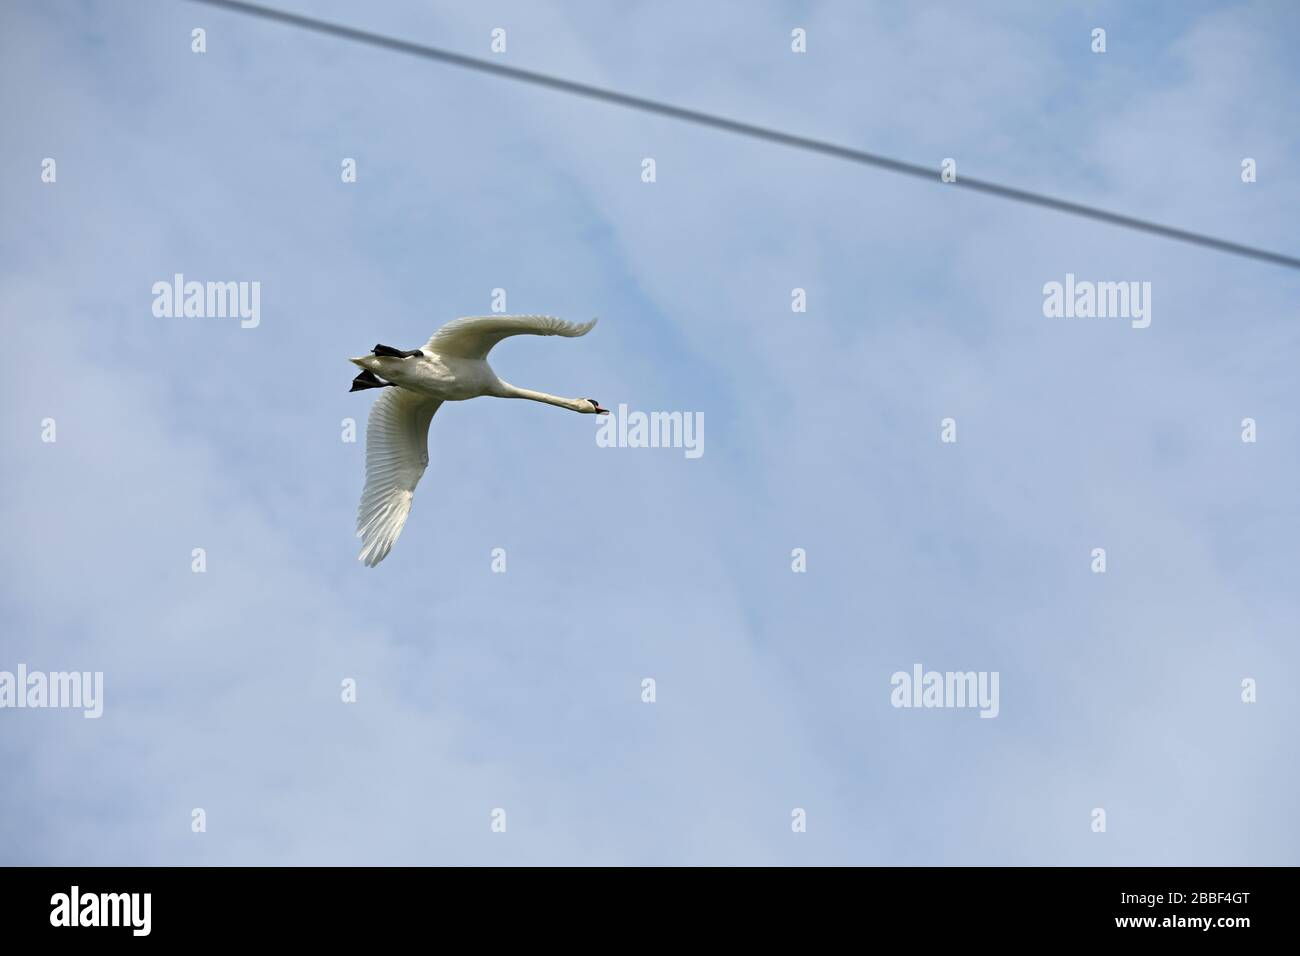 Swan flying through power lines Stock Photo